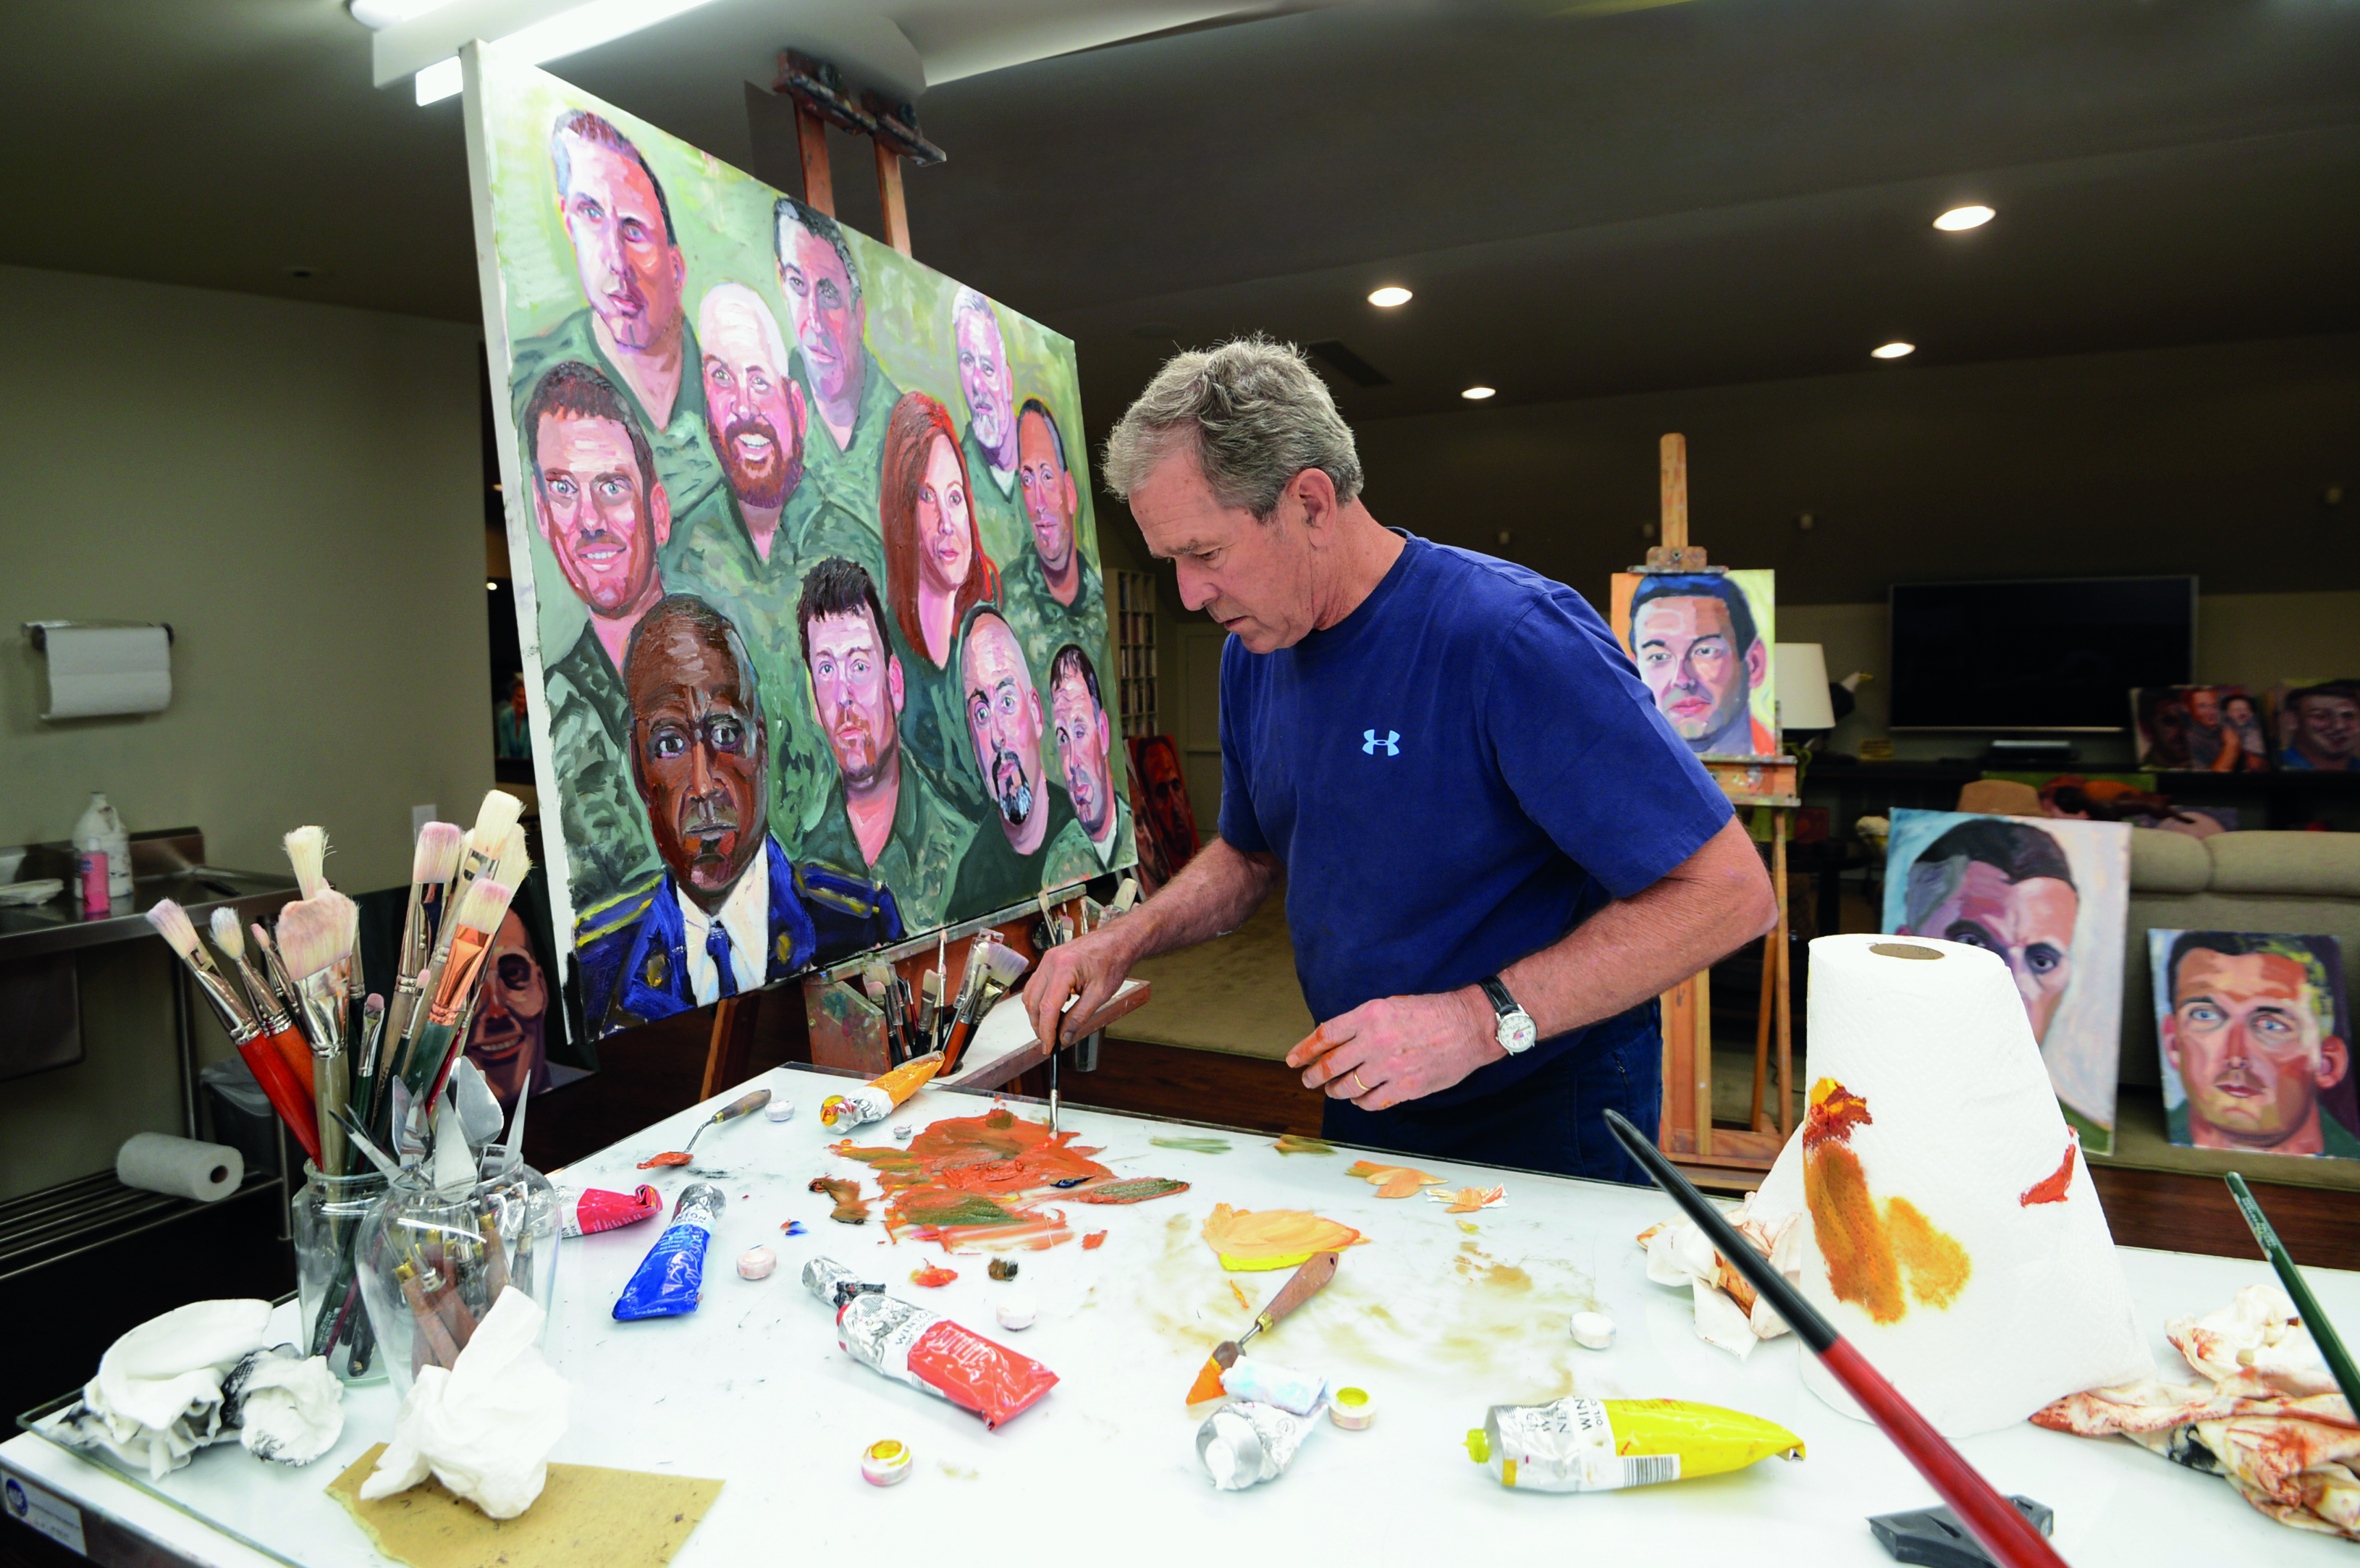 George Bush Painting Bathtub: Searching For George W. Bush In His Portraits Of The